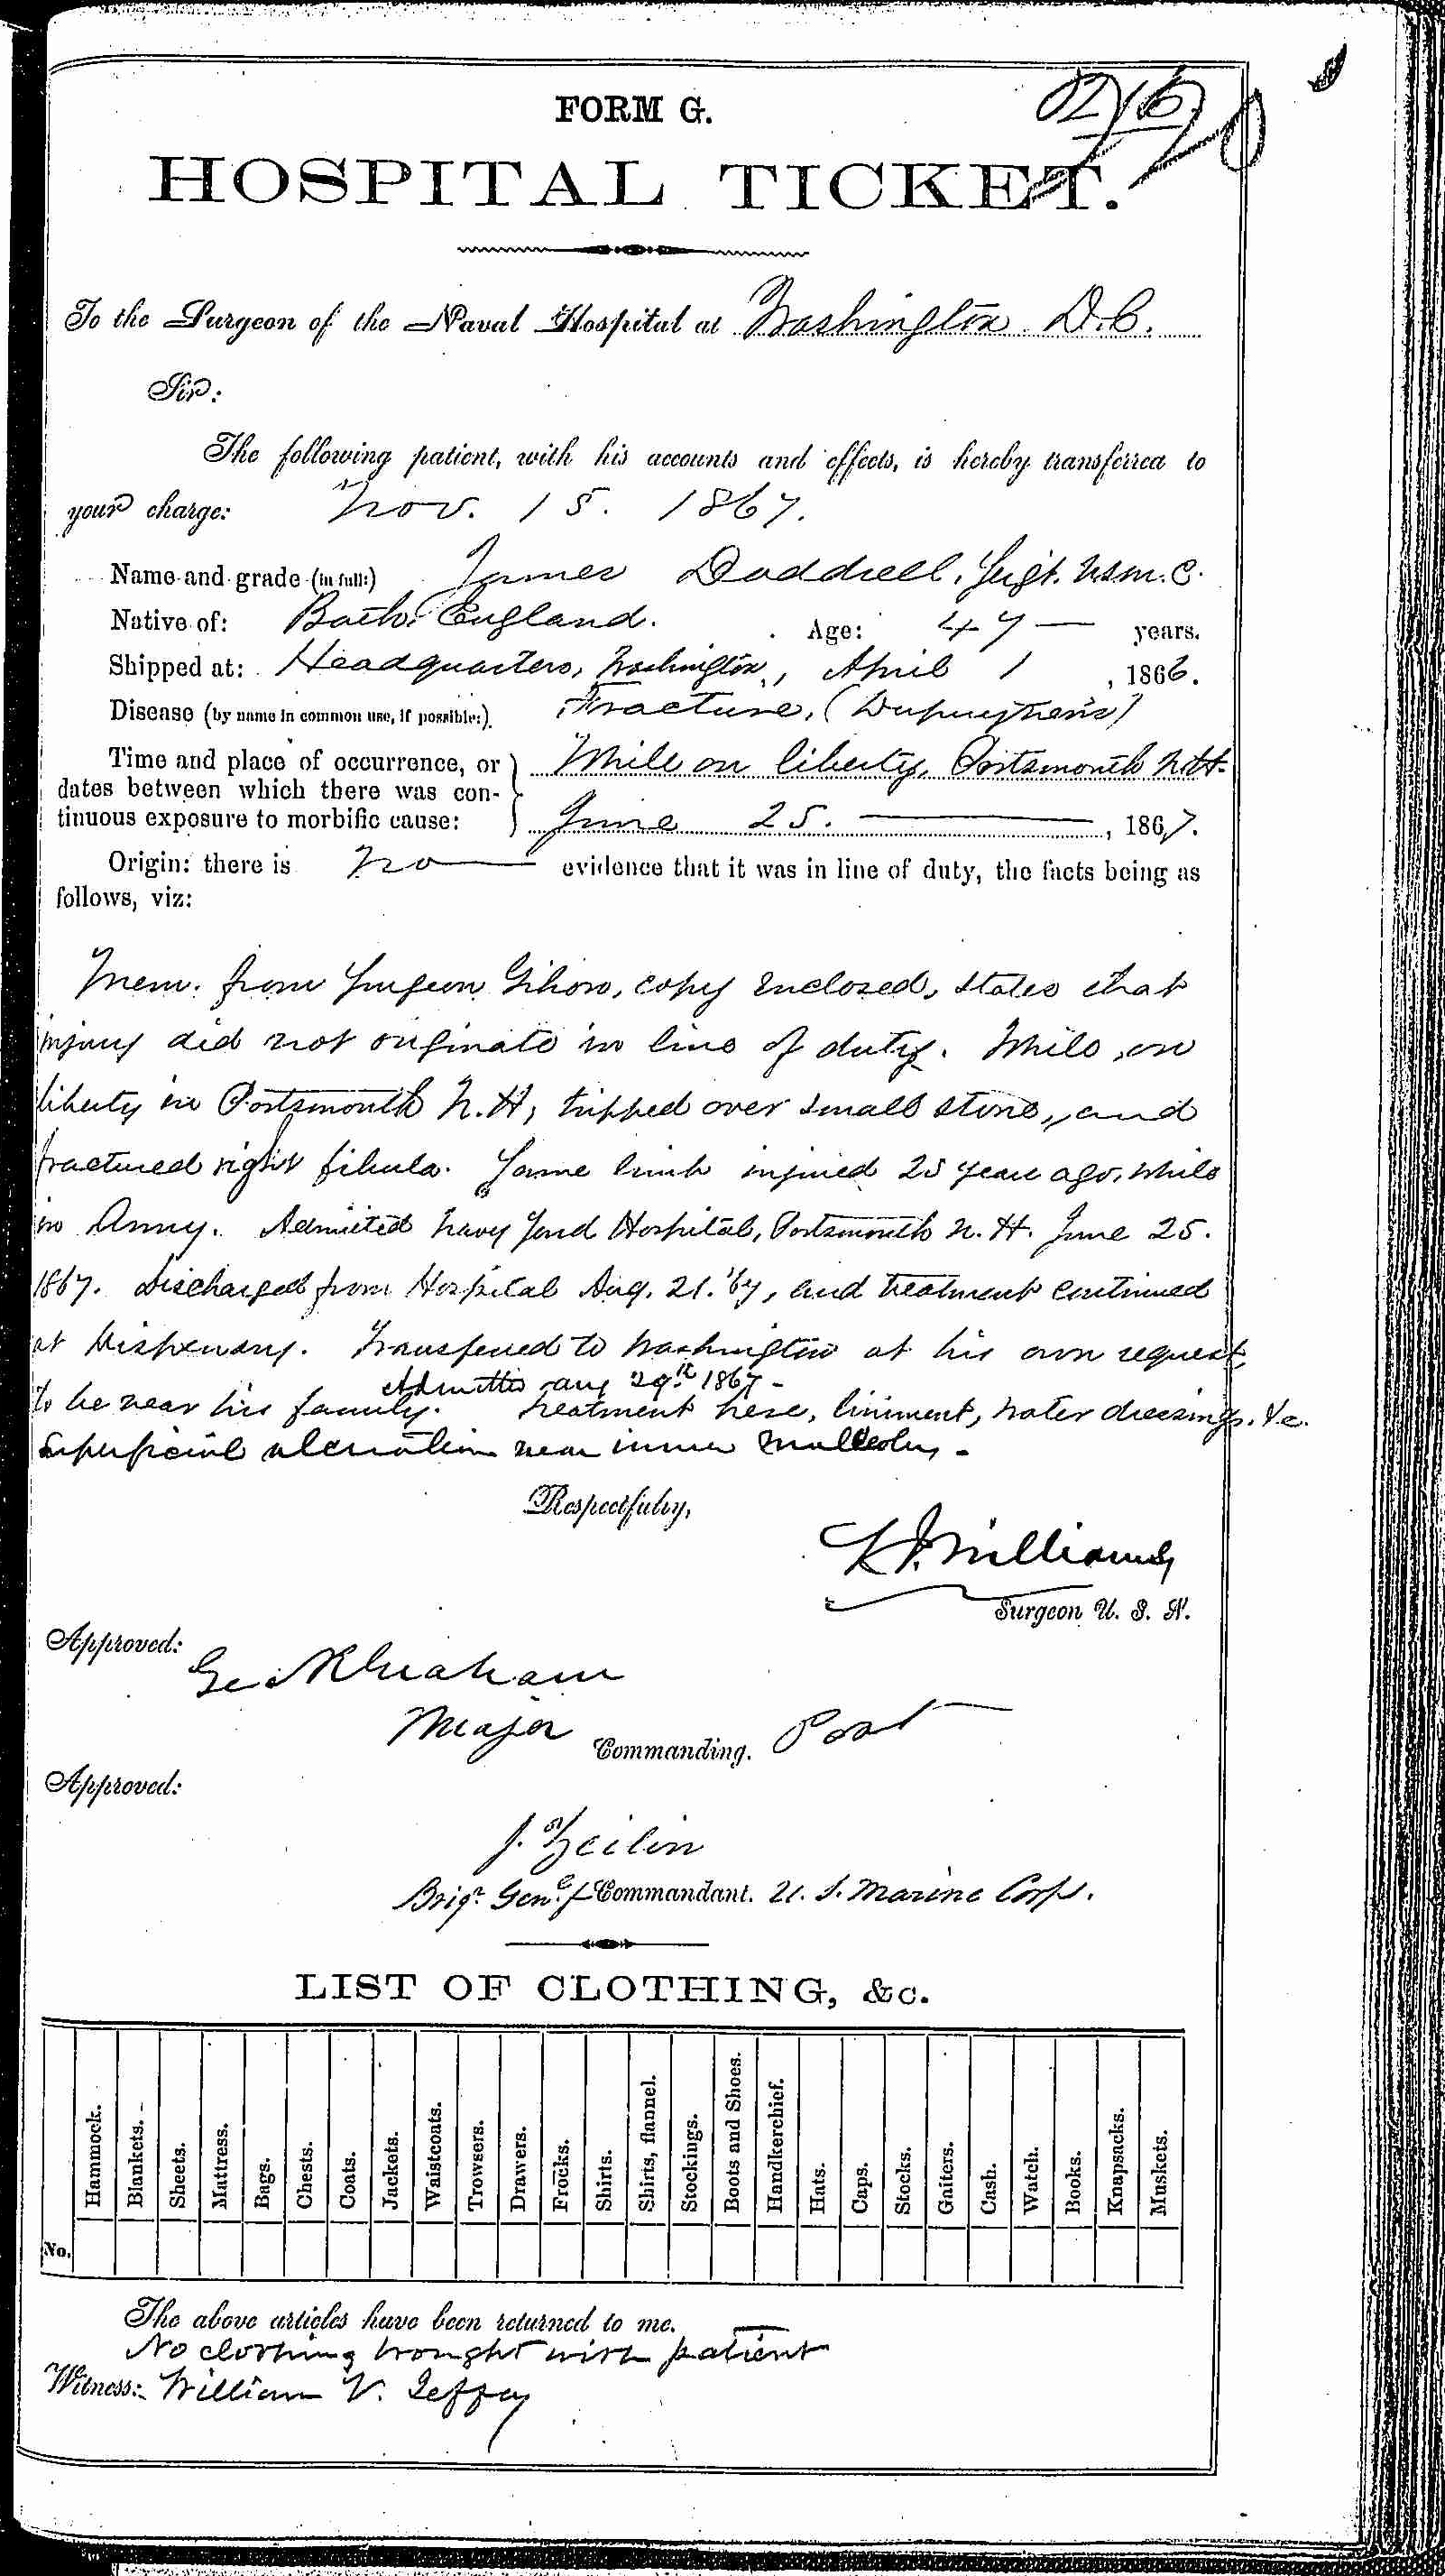 Entry for James Doddrell (second admission page 1 of 2) in the log Hospital Tickets and Case Papers - Naval Hospital - Washington, D.C. - 1866-68